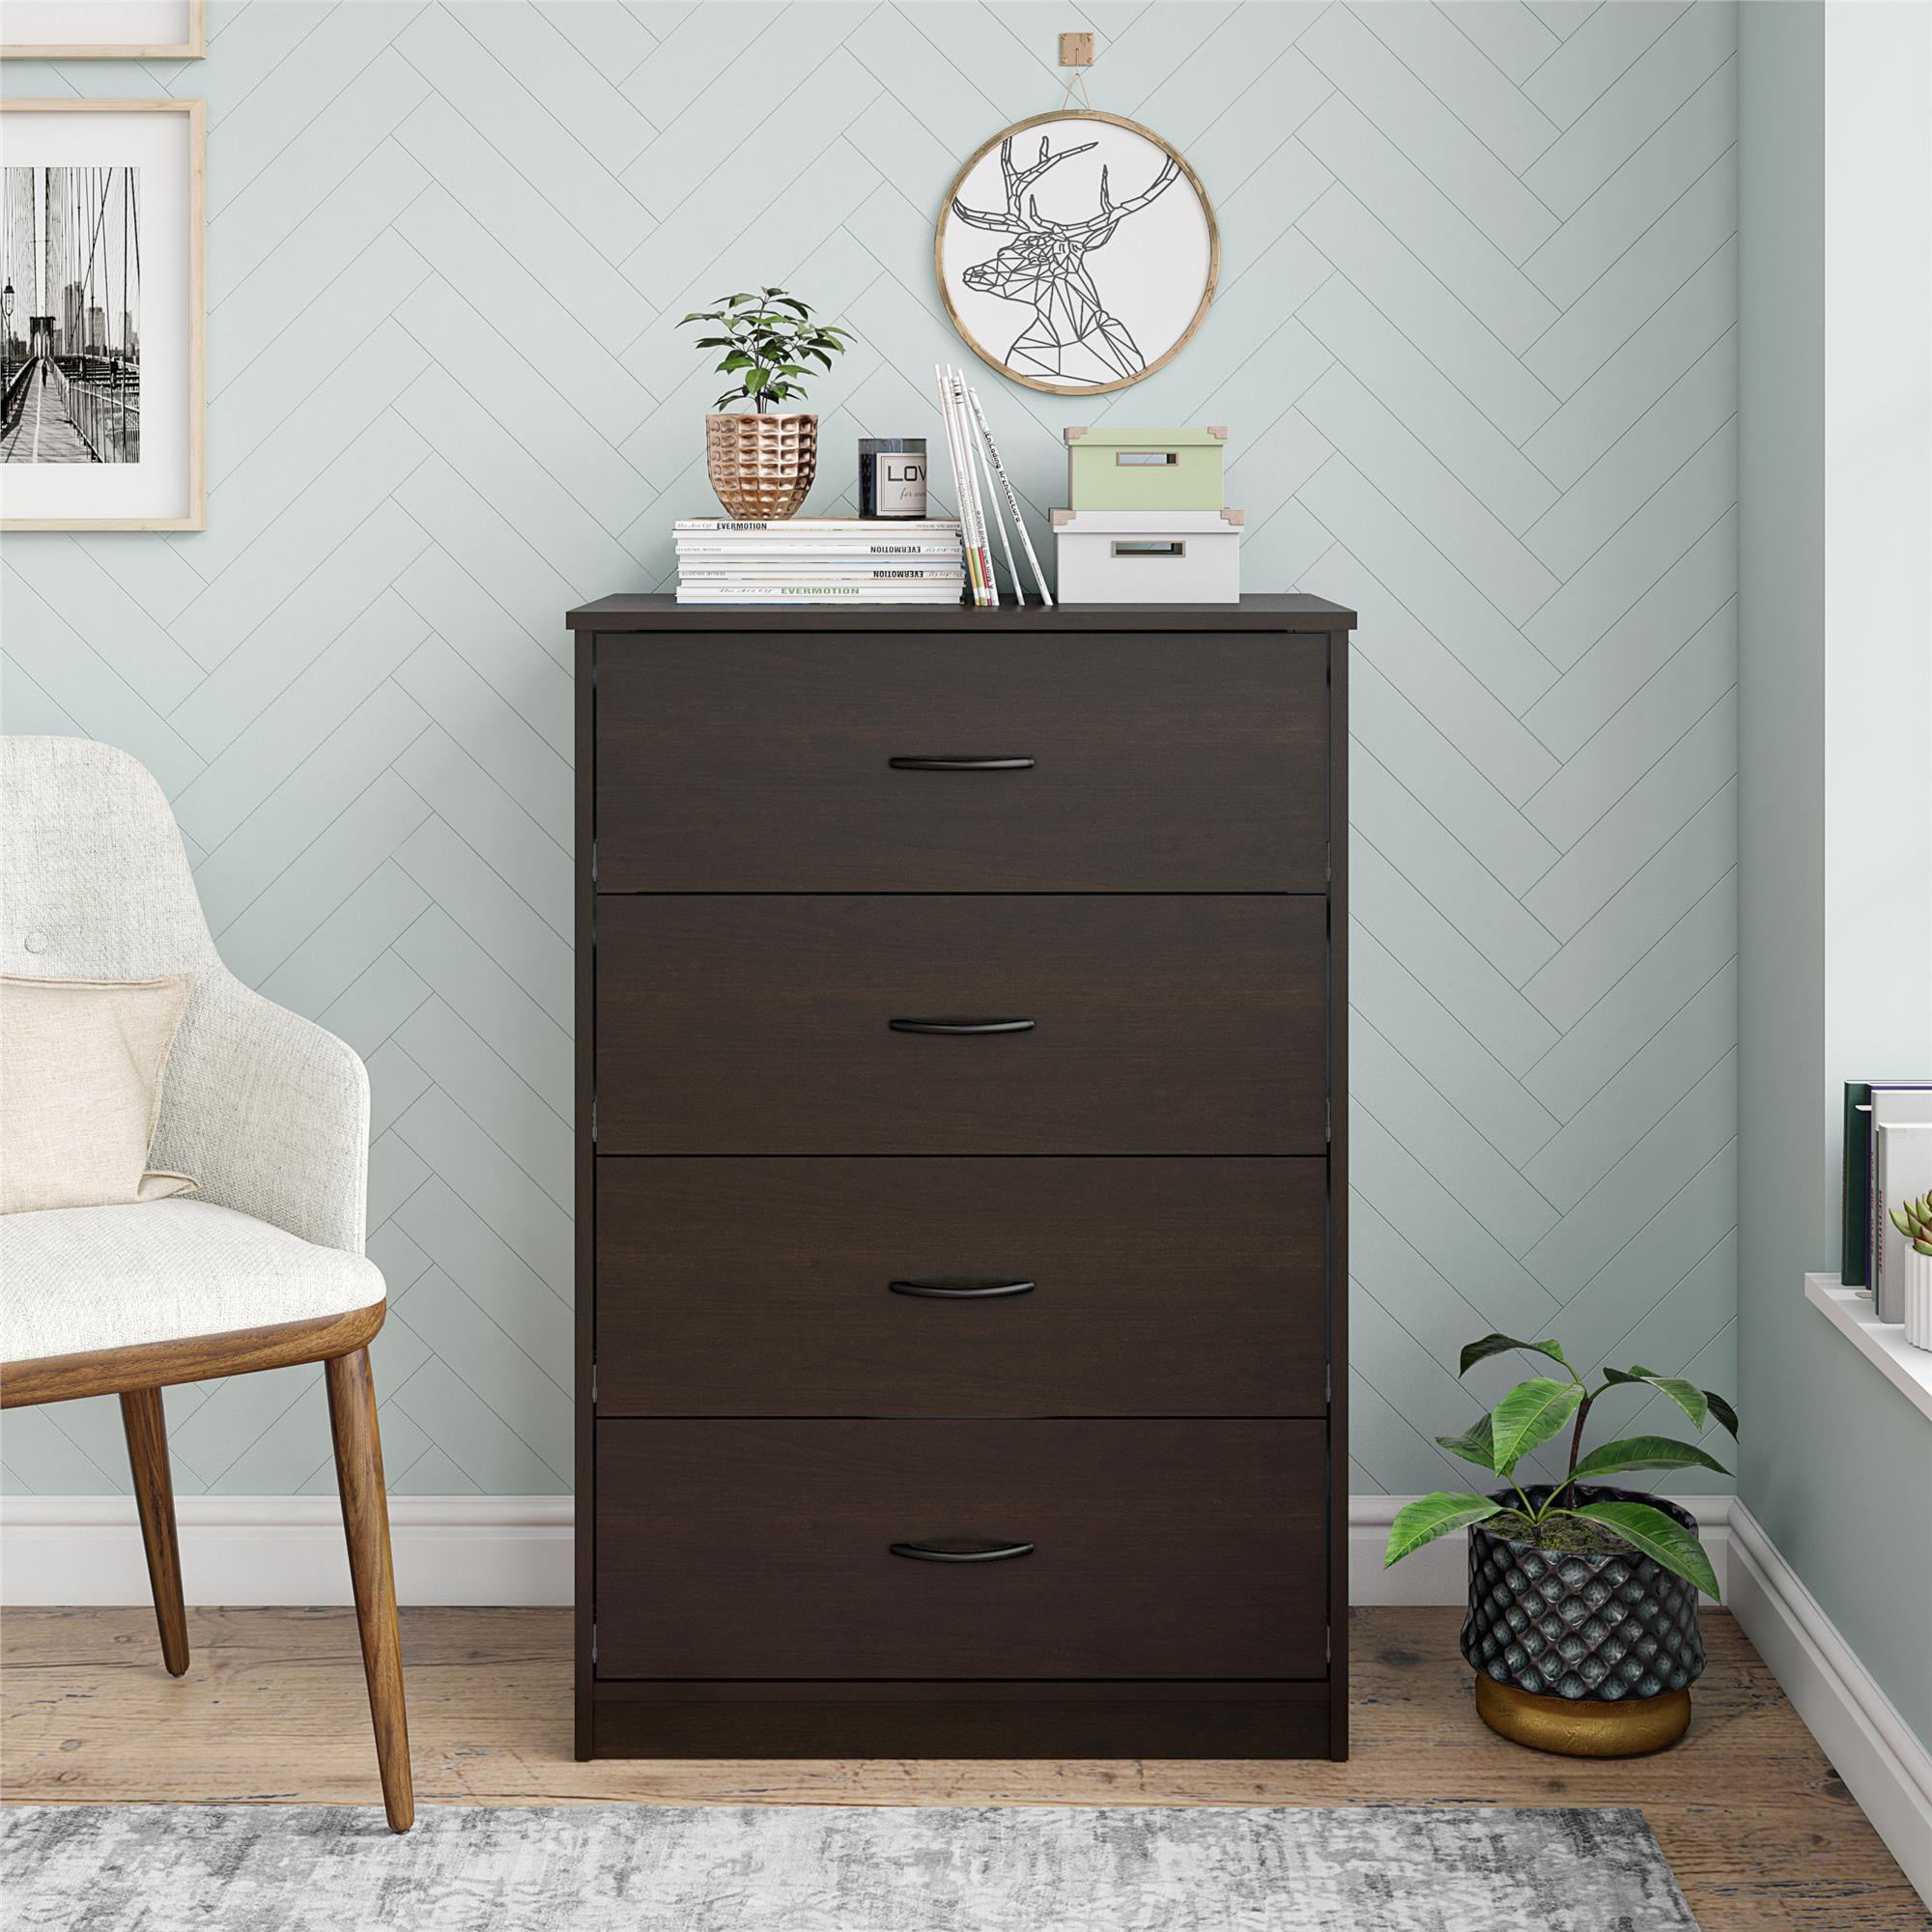 4-Drawer Bedroom Indoor Storage Cabinet Dresser Furniture in Espresso Finish